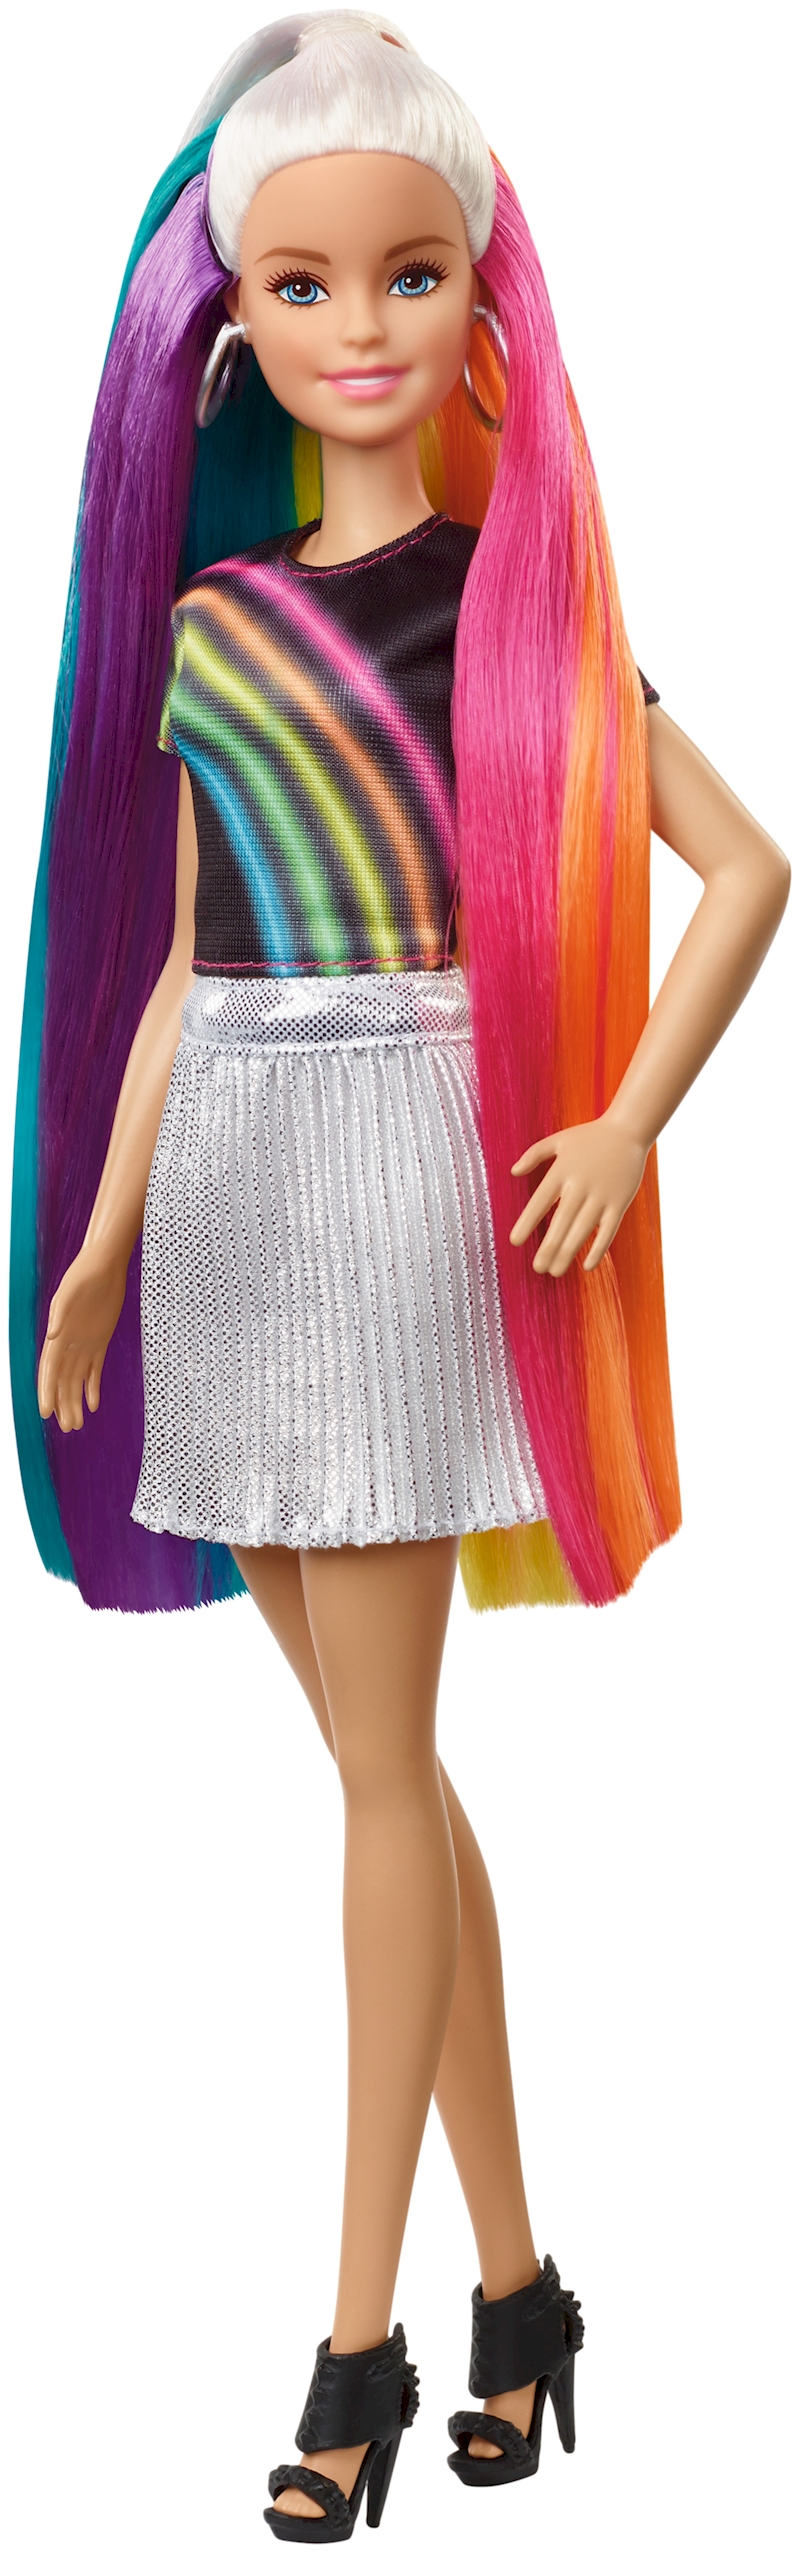 Awesome Rainbow Sparkle Hair Barbie wallpapers to download for free greenvirals